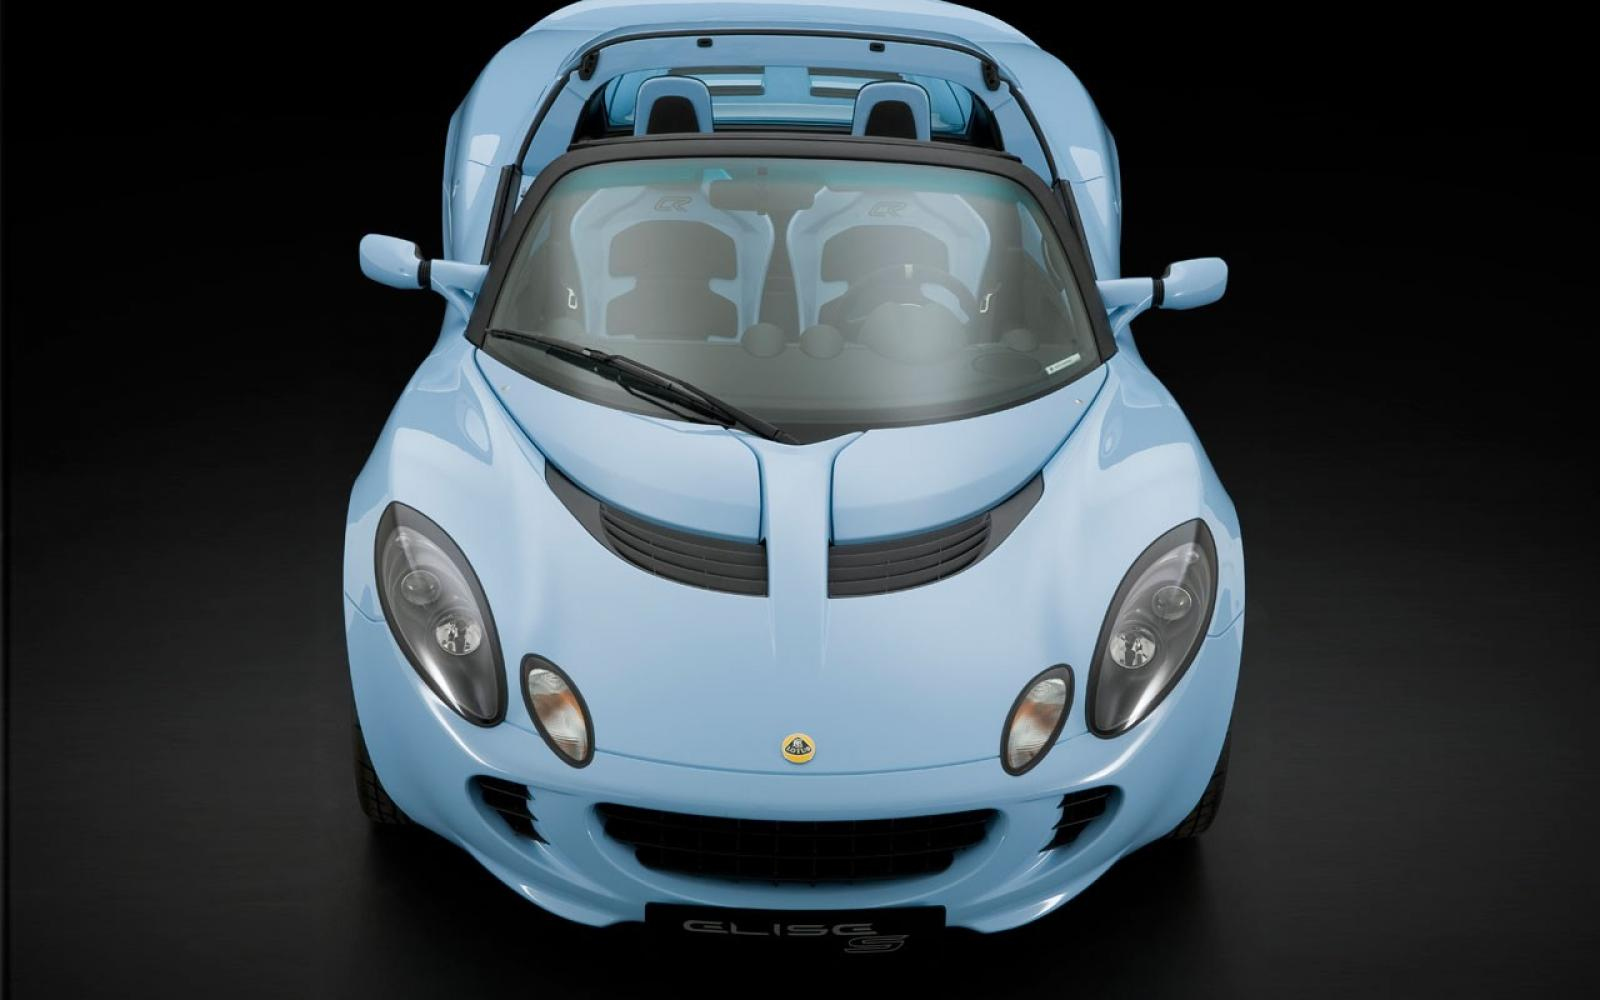 Special Edition: Lotus Elise Club Racer